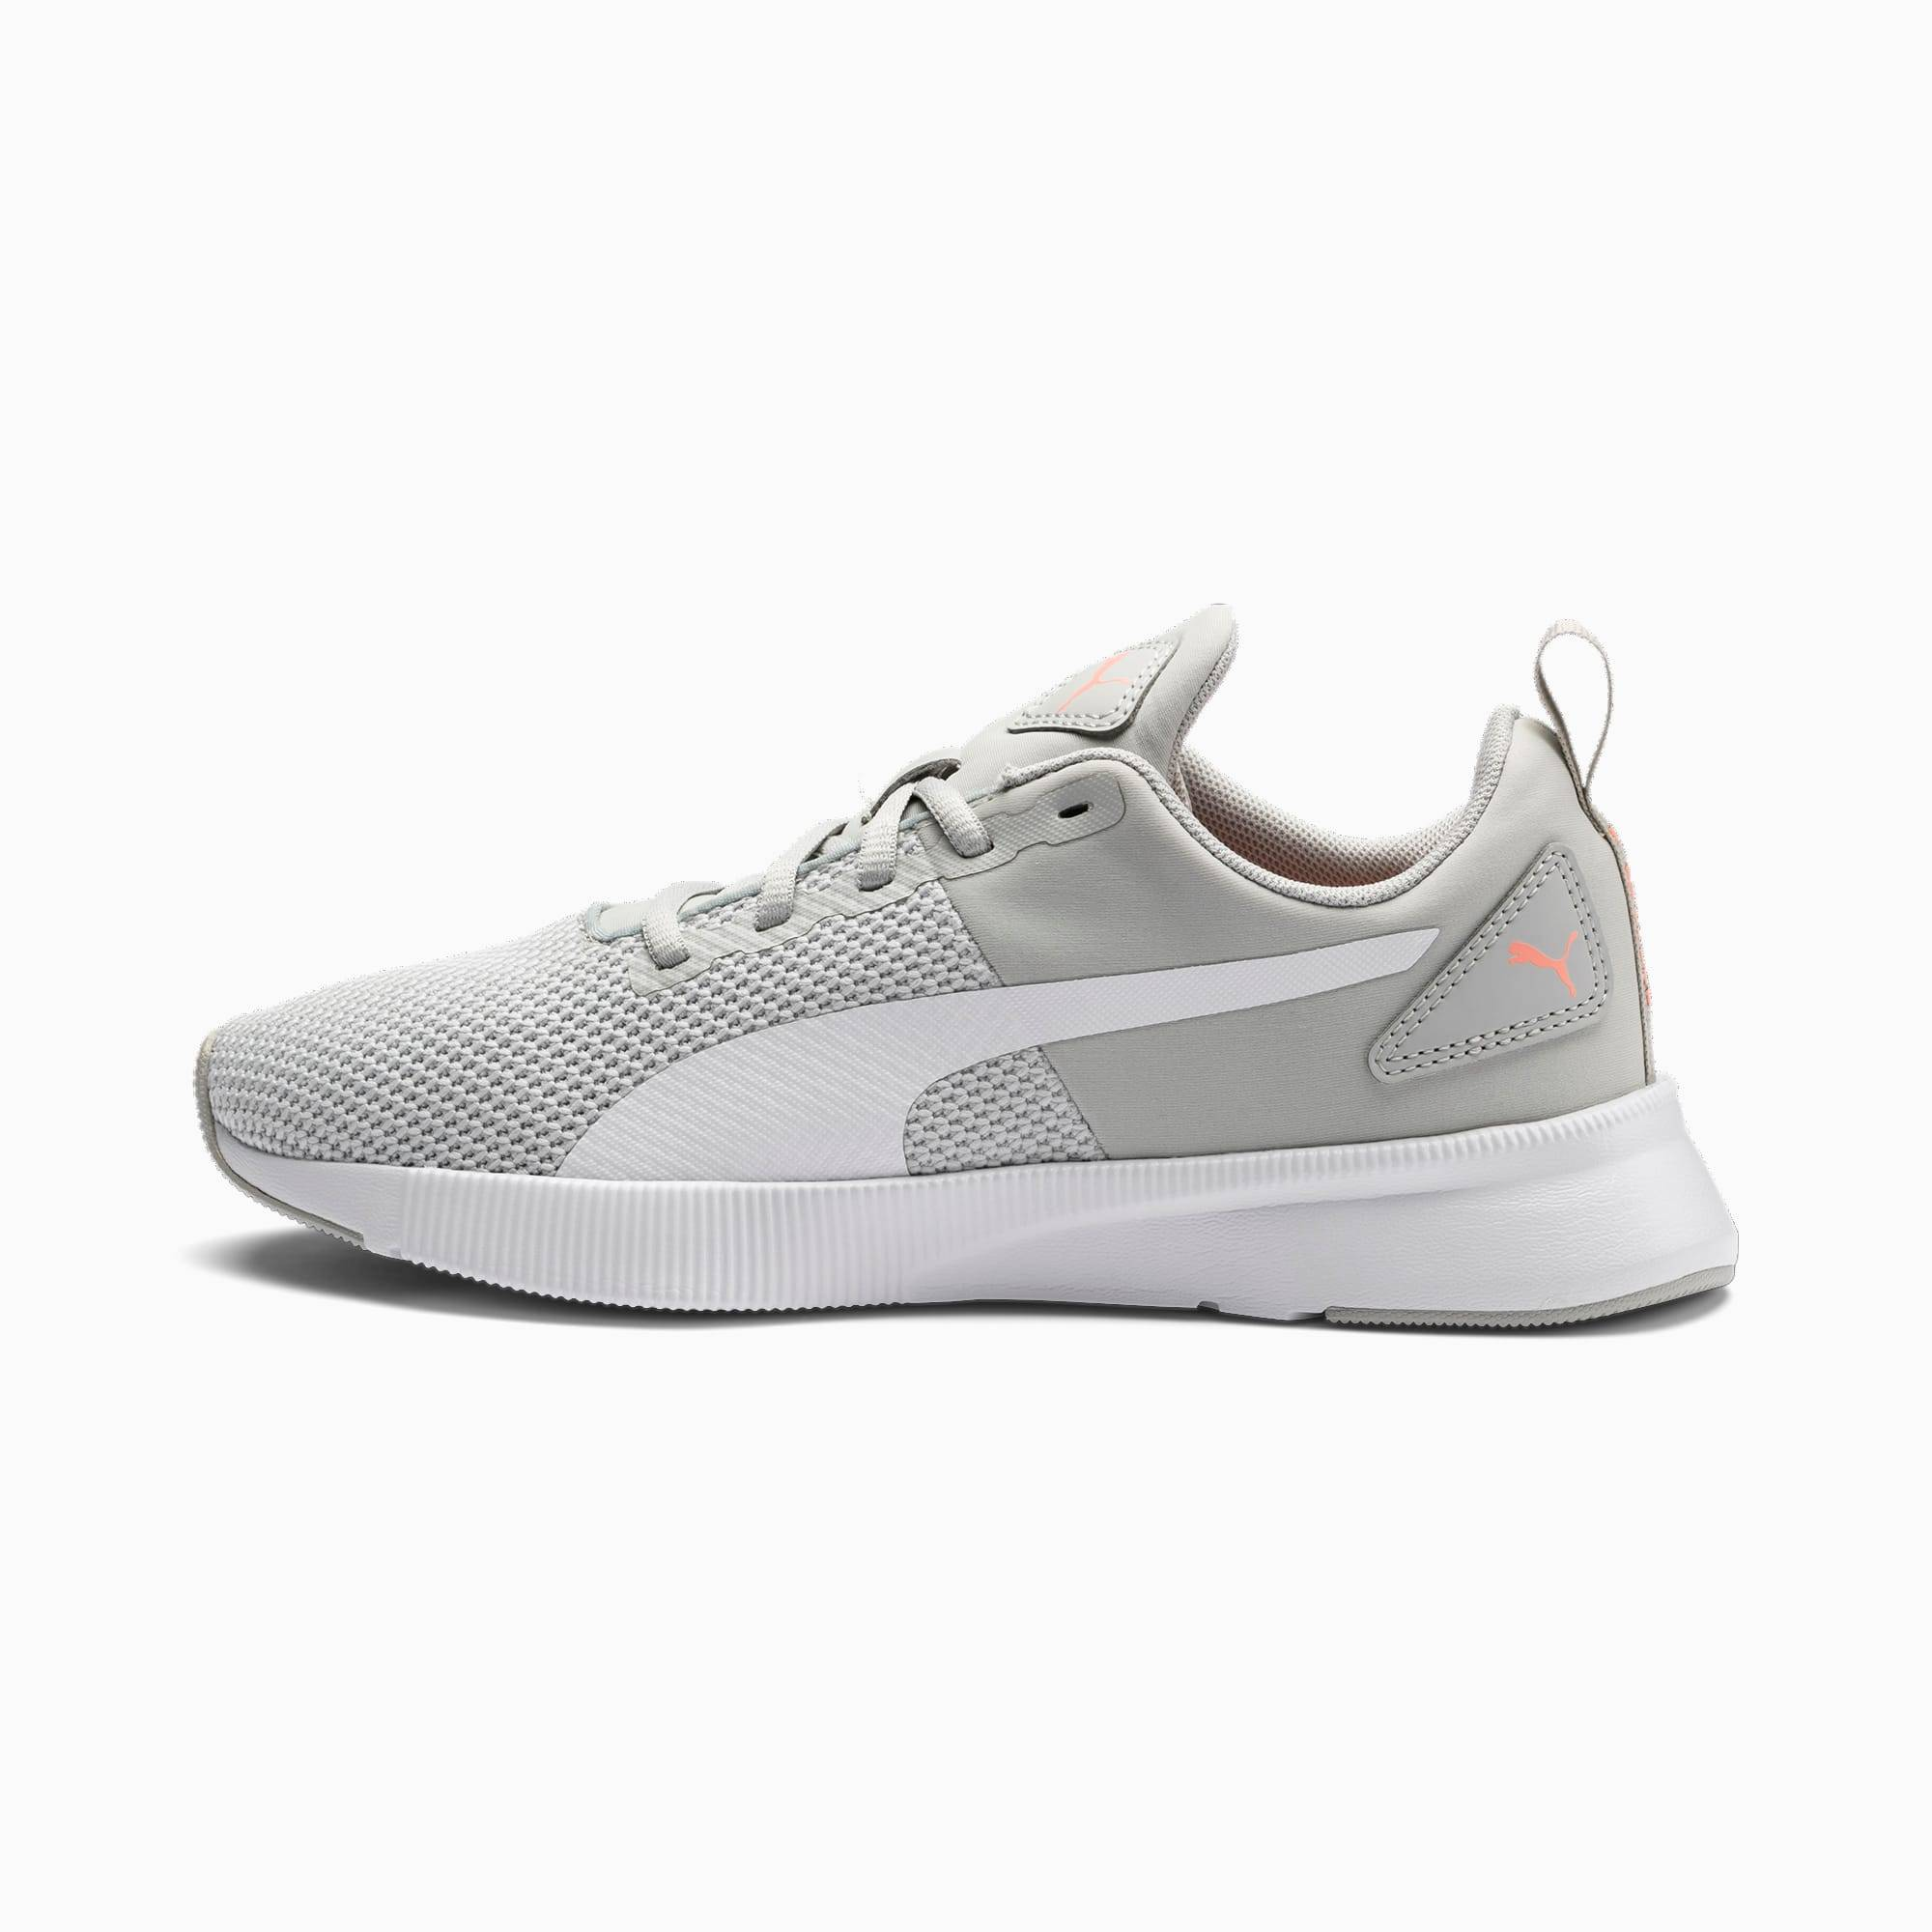 PUMA Chaussure de course Flyer Runner, Blanc/Rose/Gris, Taille 38, Chaussures